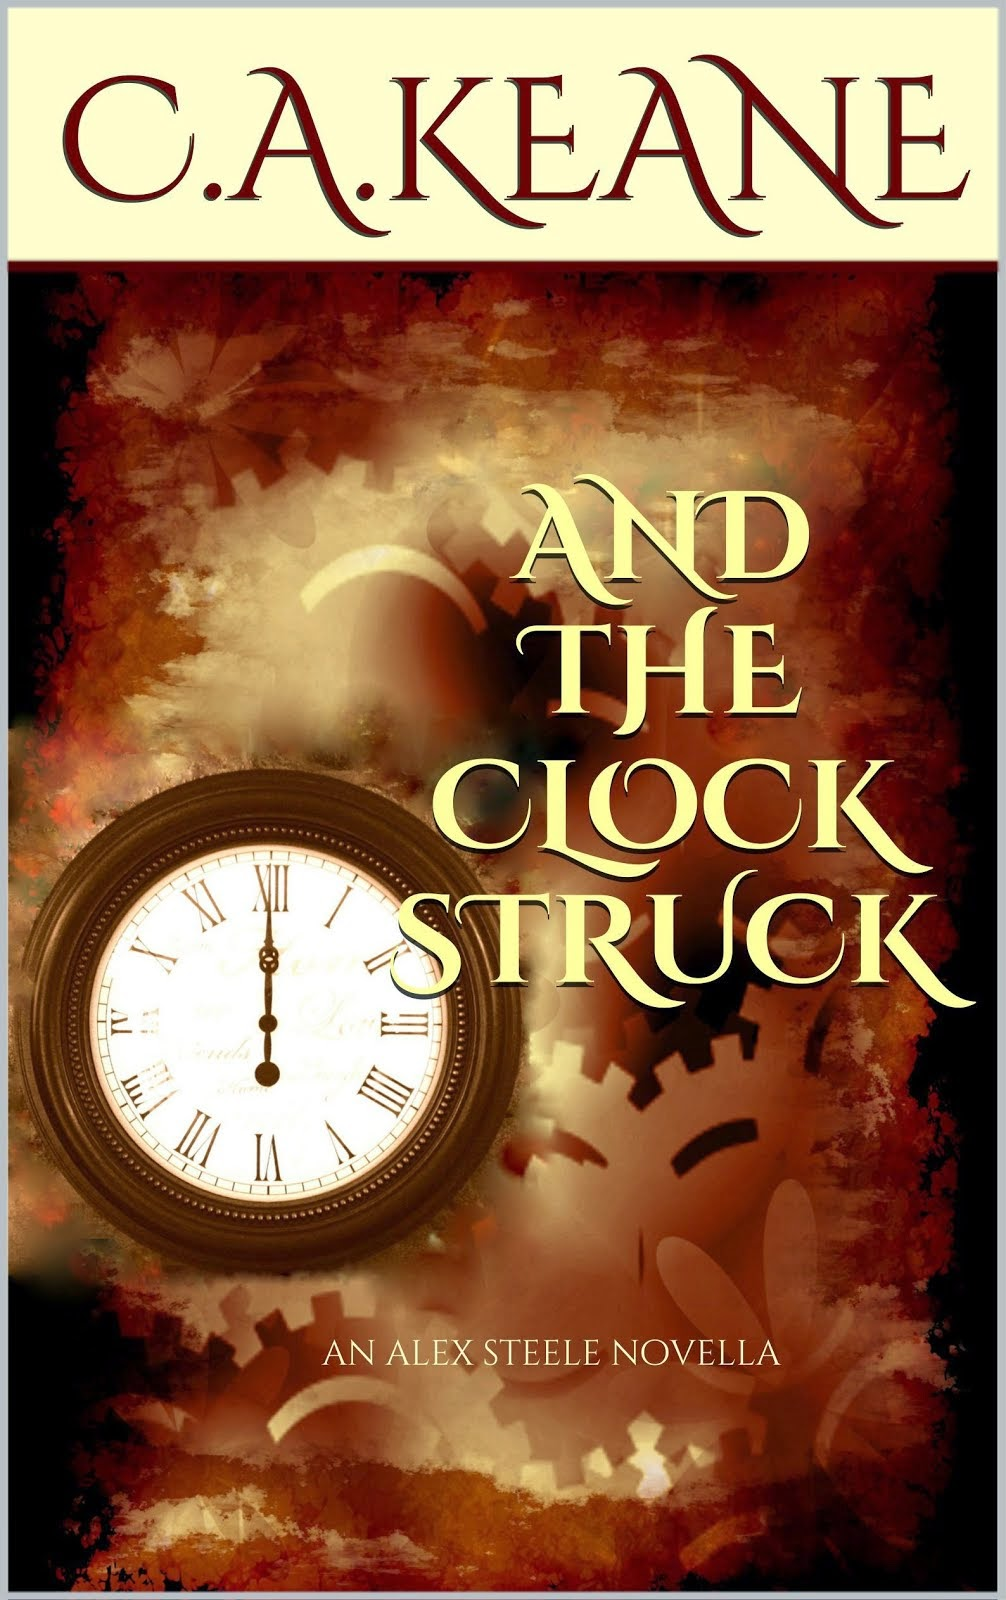 And The Clock Struck by C.A. Keane